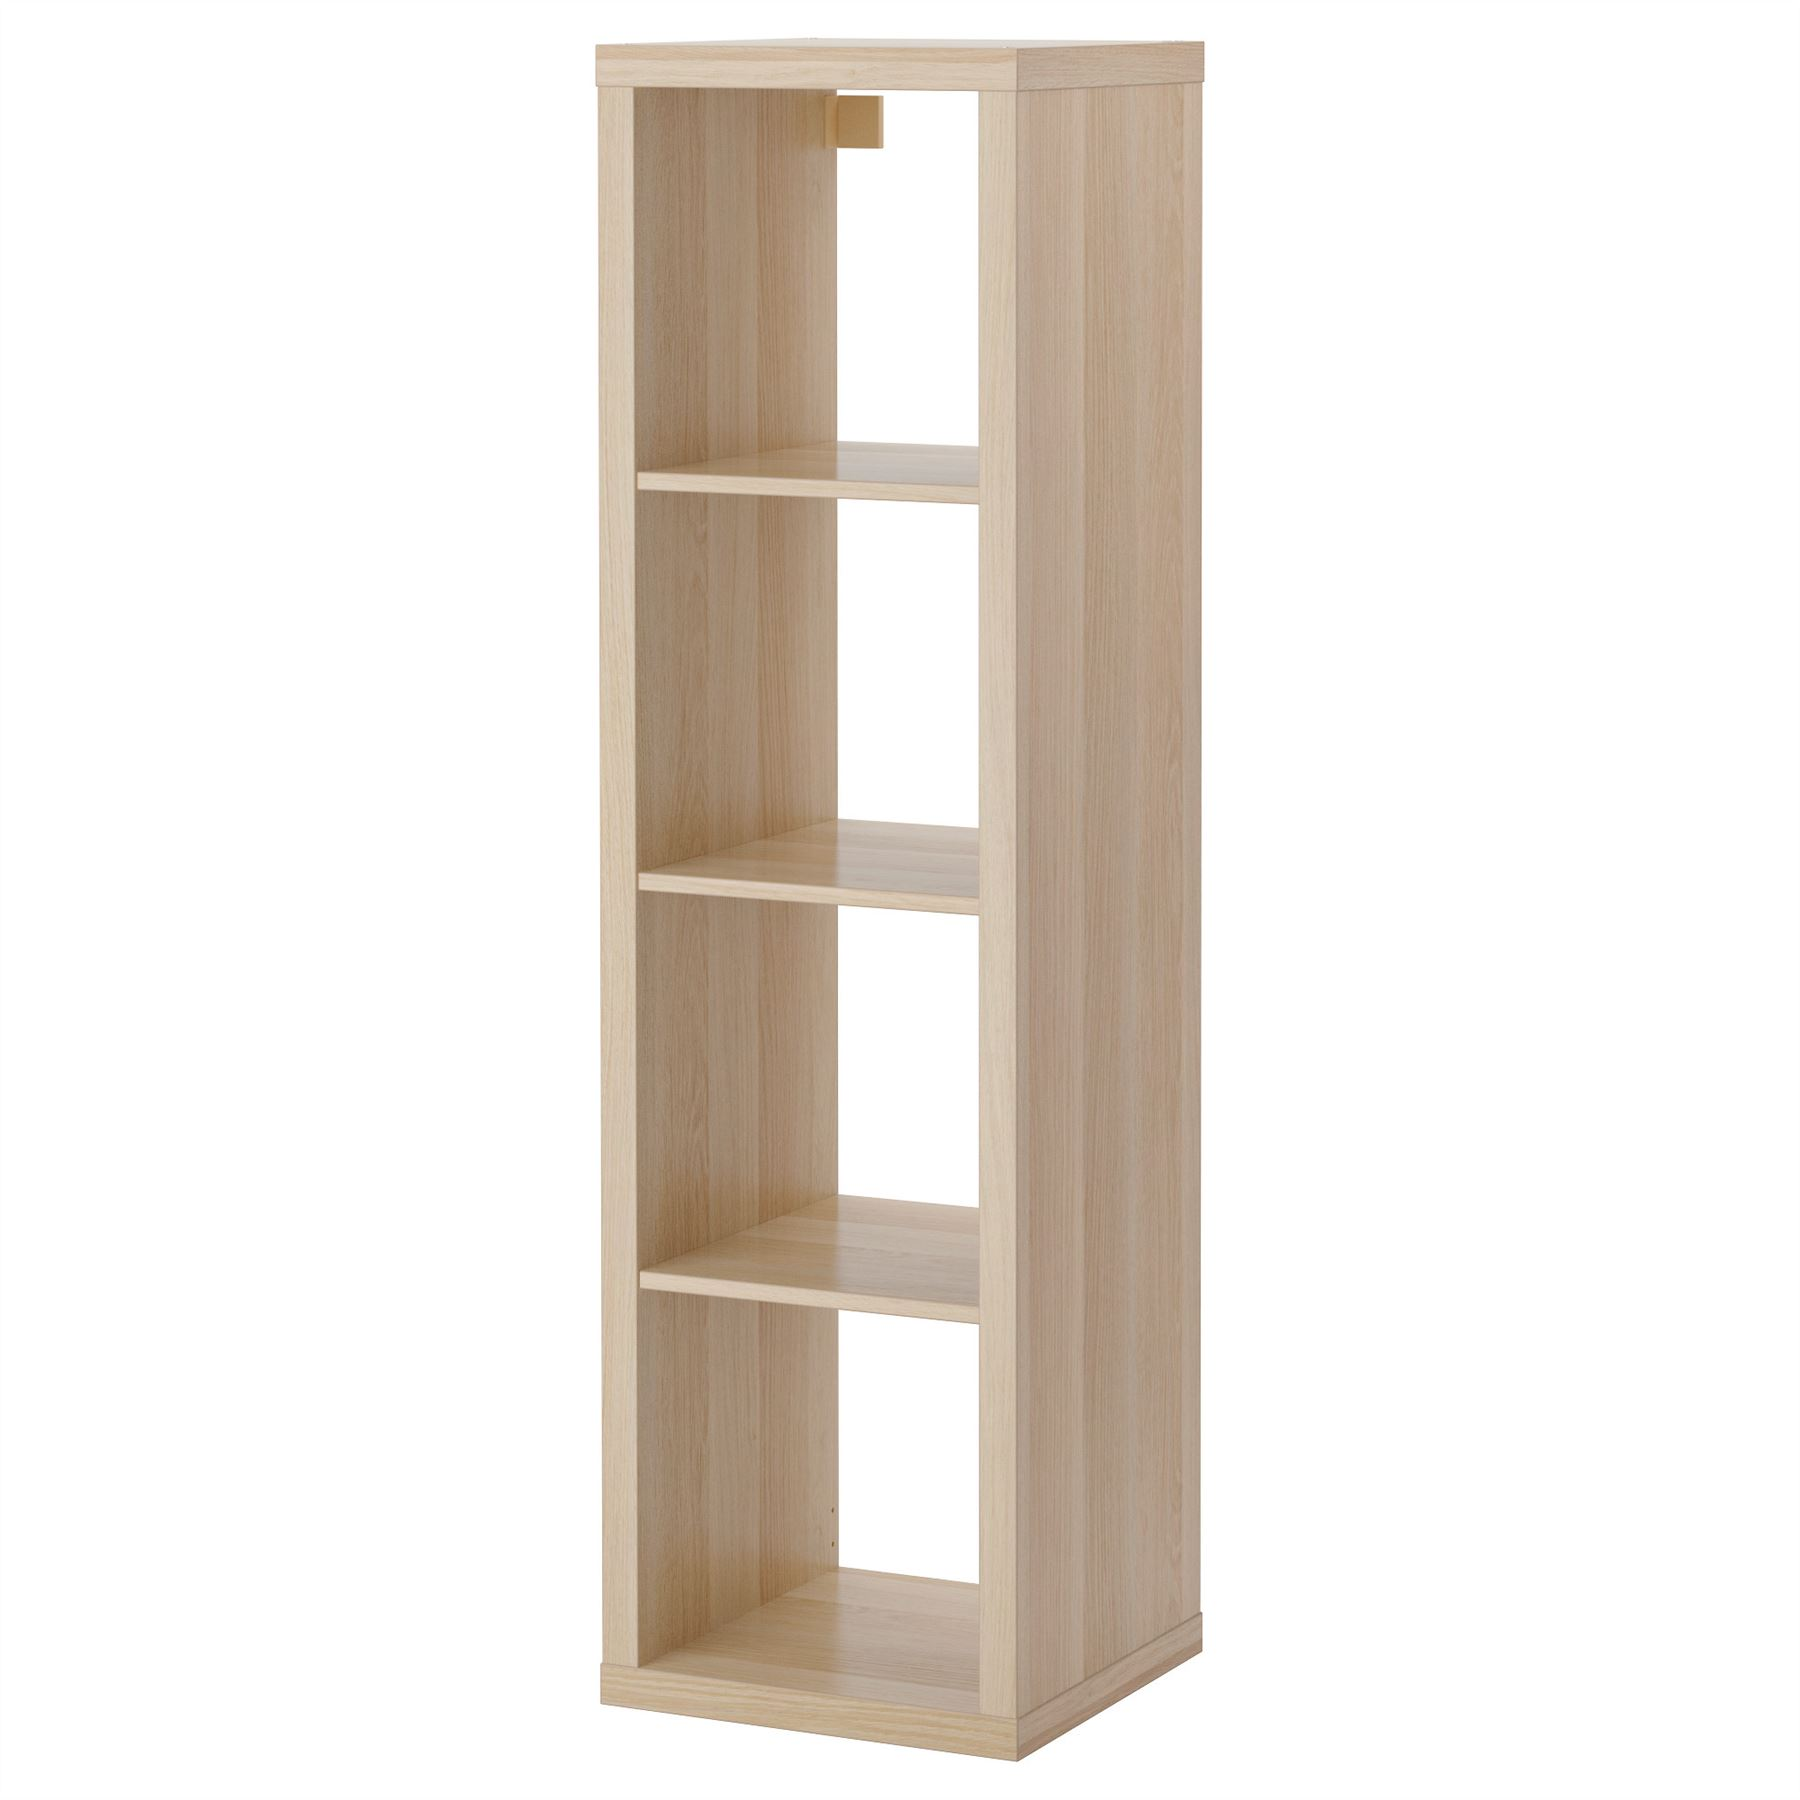 Ikea Kallax 4 Cube Storage Bookcase Rectangle Shelving